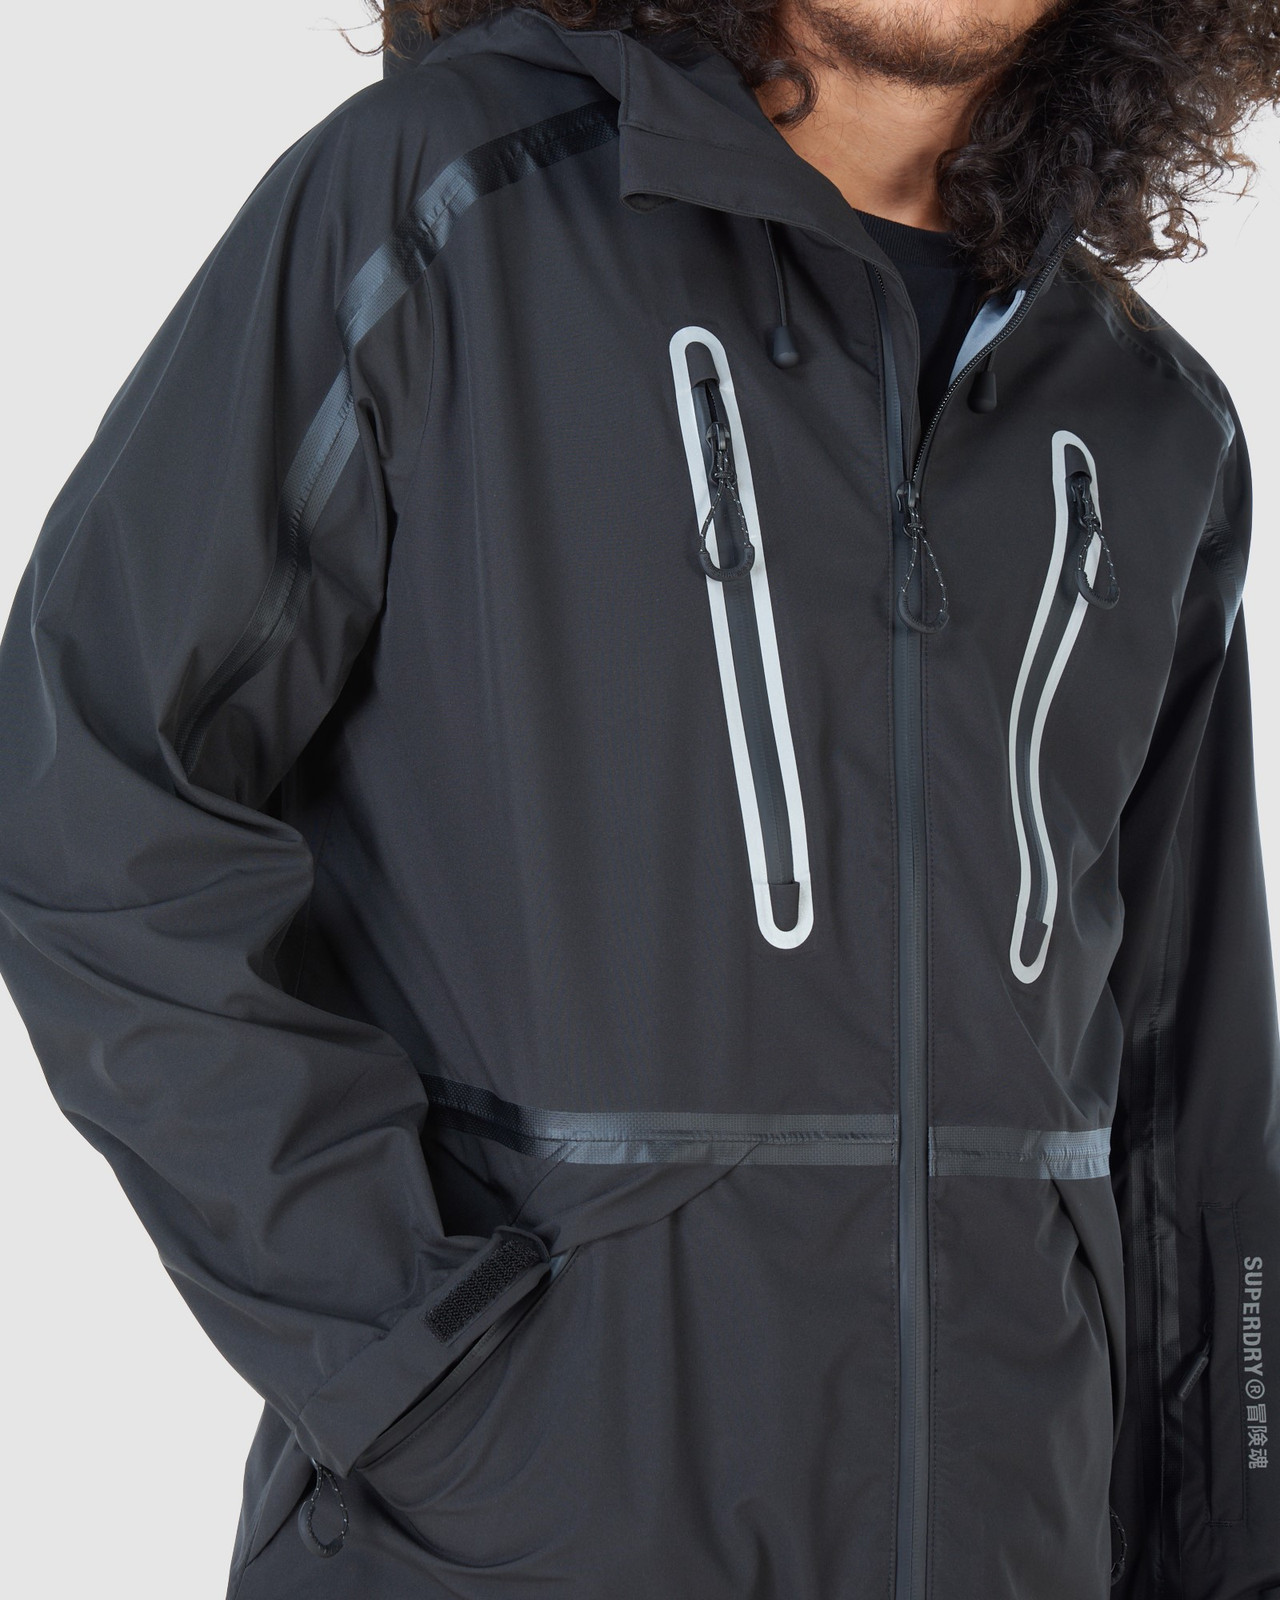 Superdry Mens EXPEDITION SHELL JACKET Black Snow Jackets 11